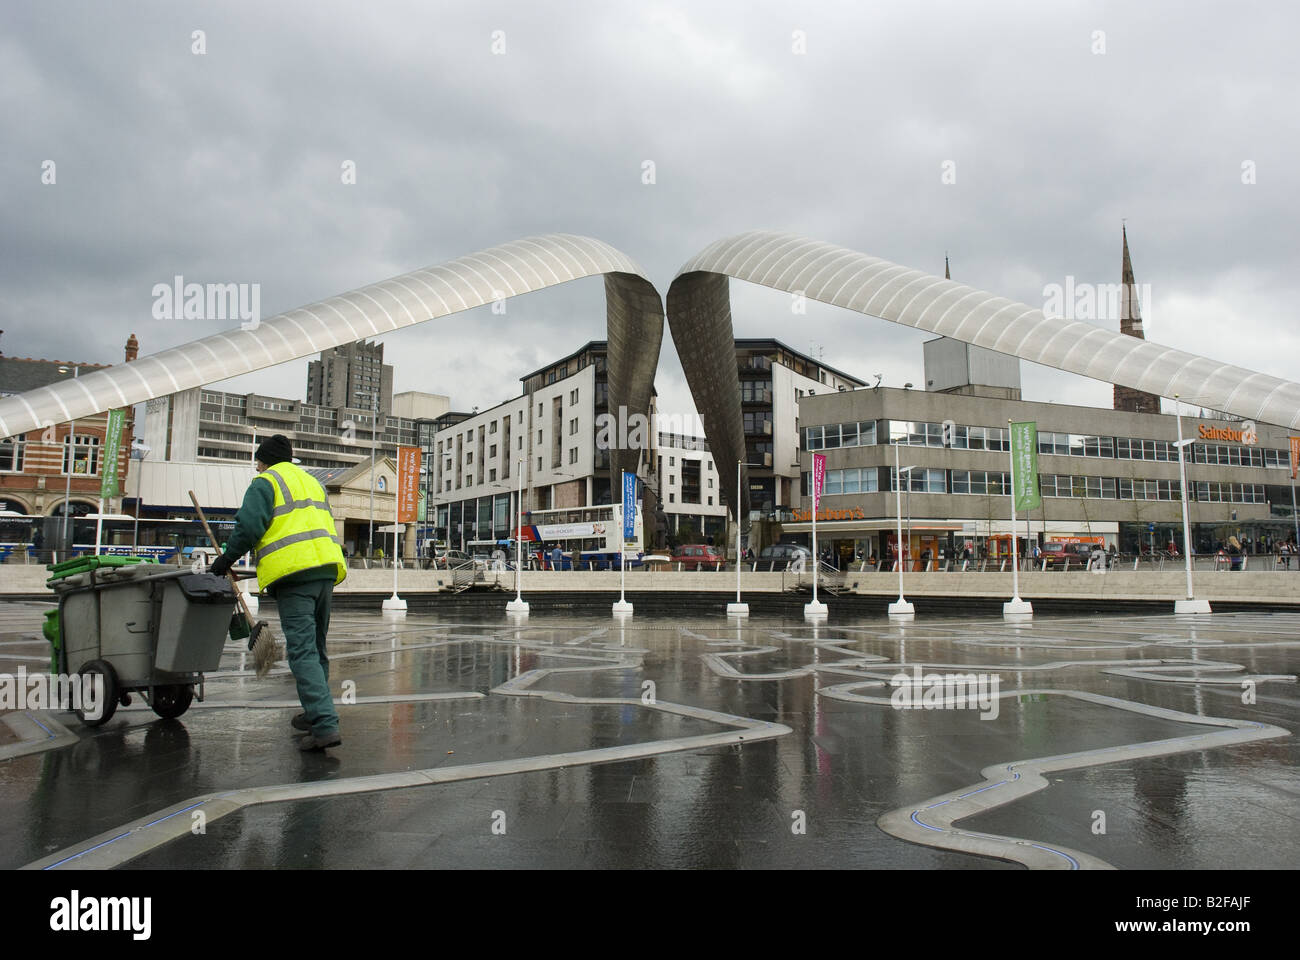 A street sweeper pushes his cart past the Whittle Arches near the Coventry Transport Museum, Millennium Place, Coventry. - Stock Image